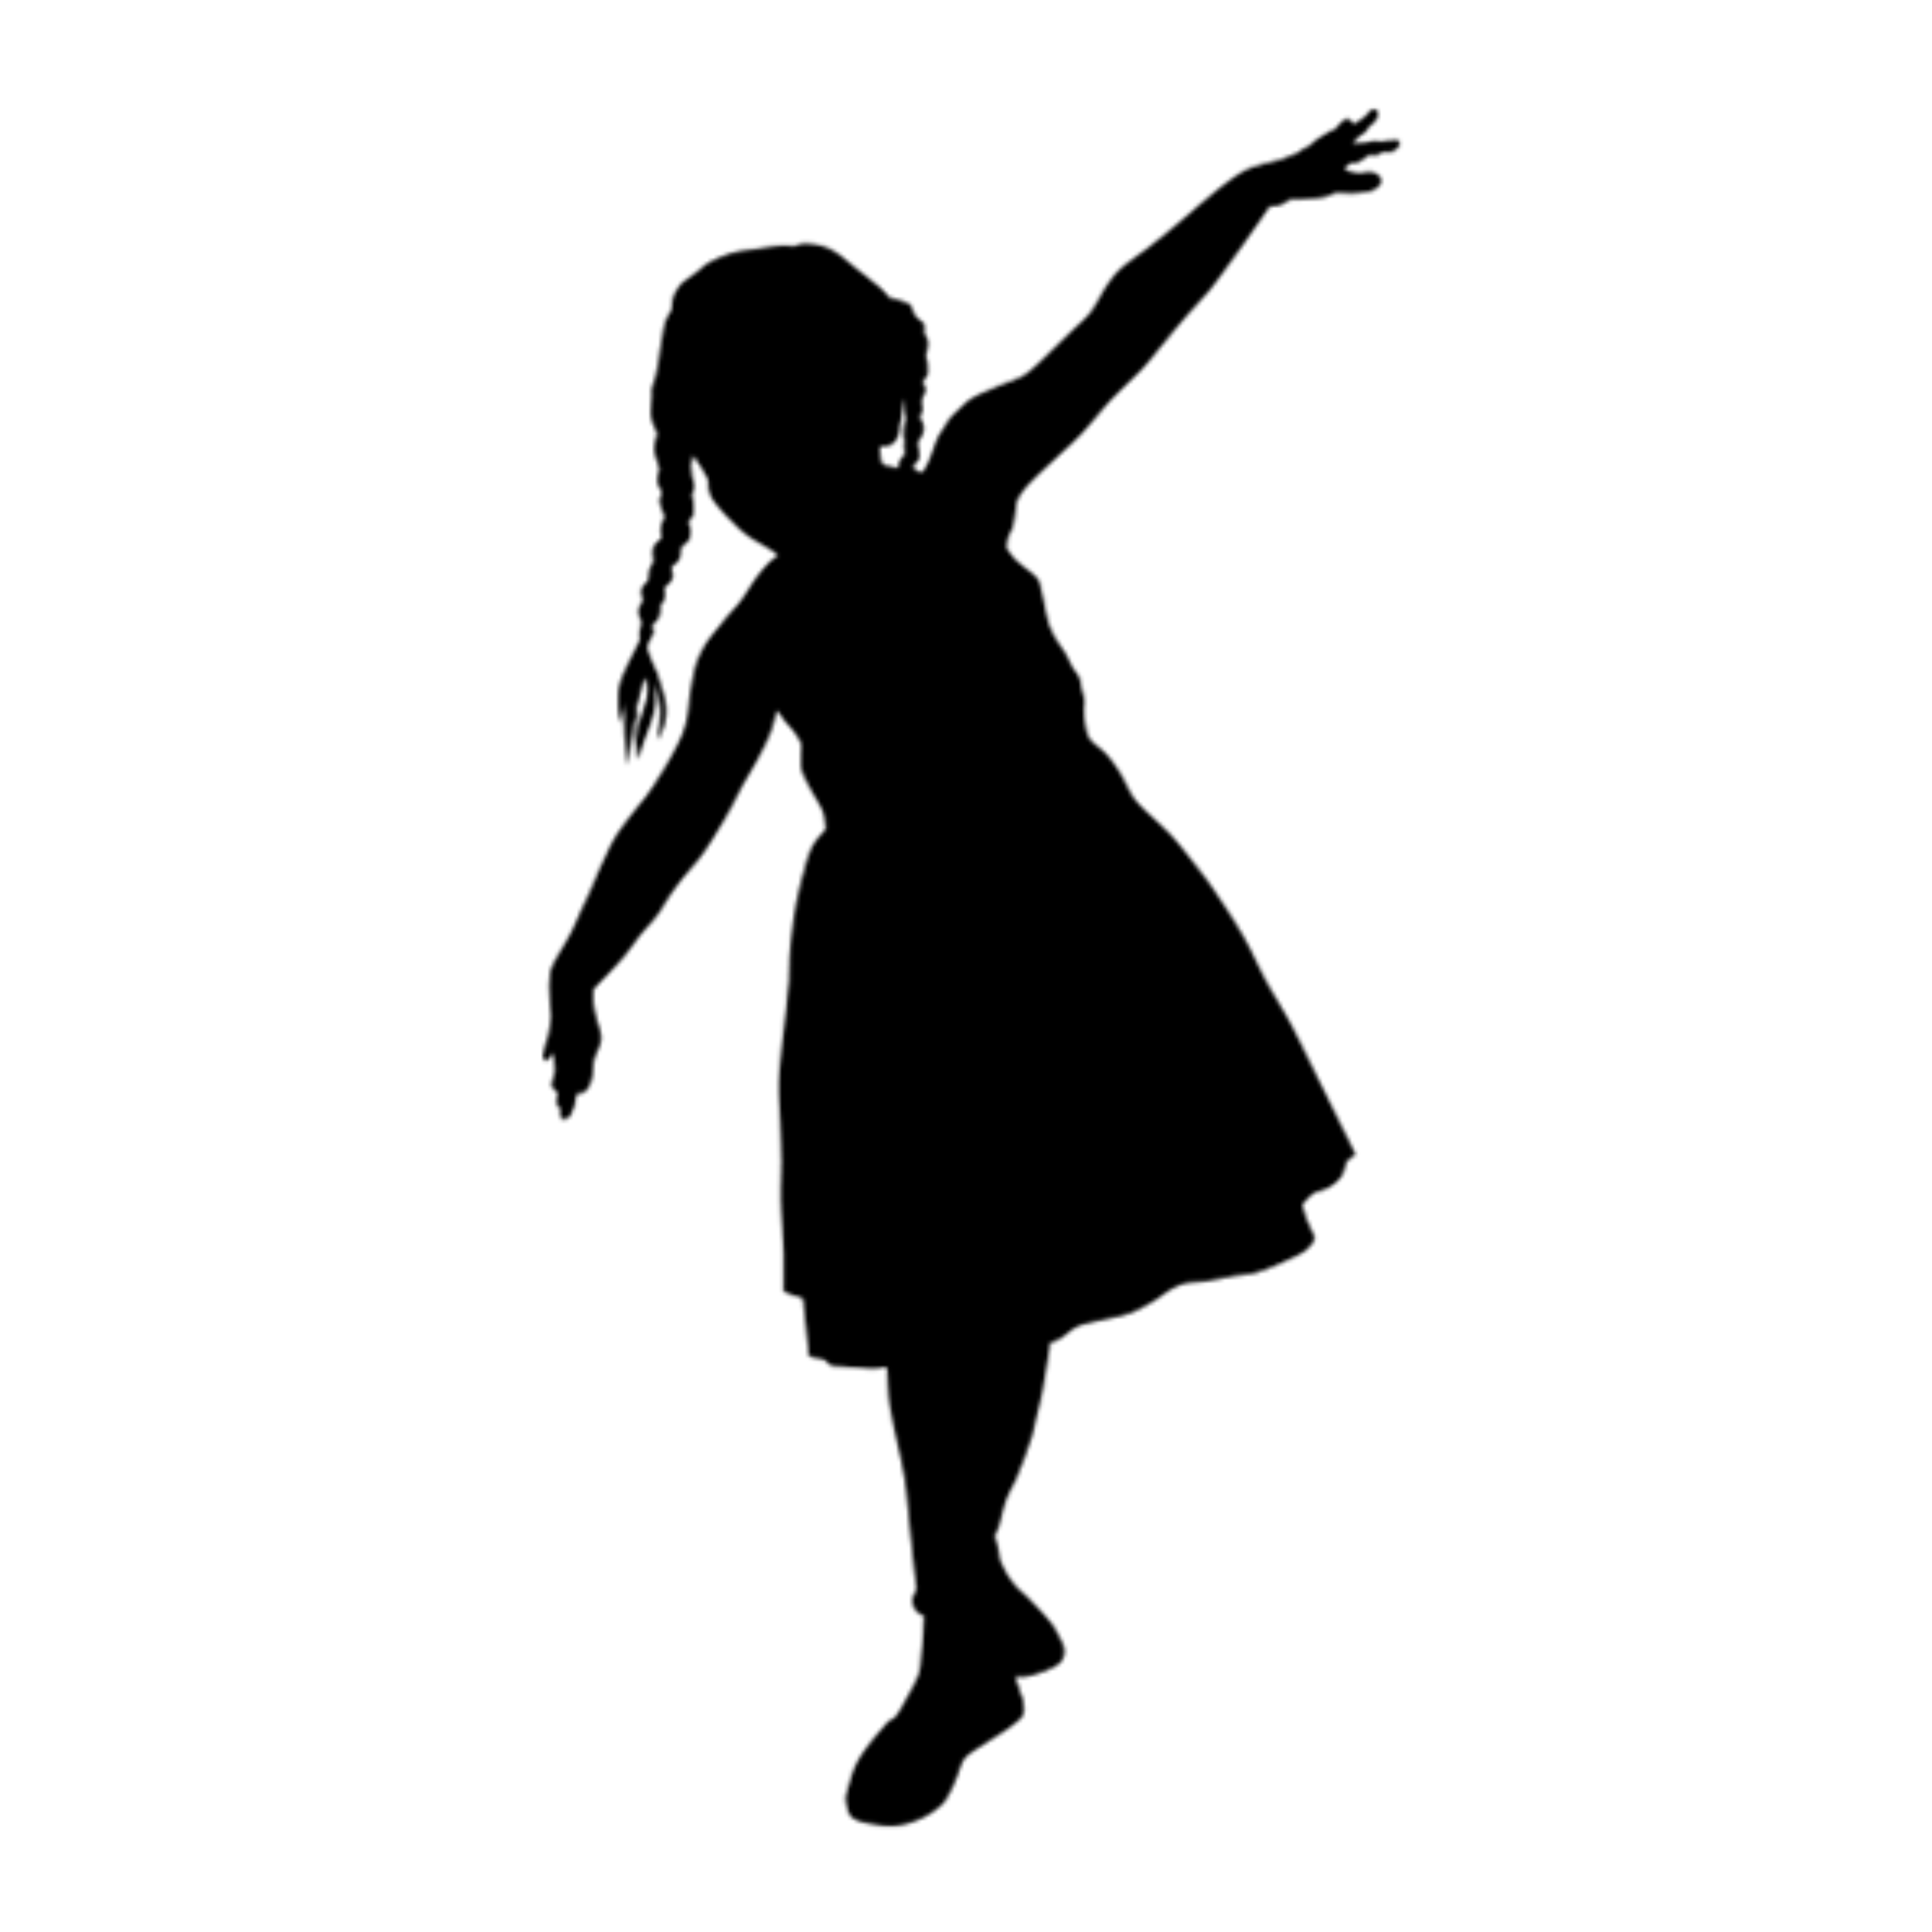 Silhouette Child Drawing Vector graphics Image.